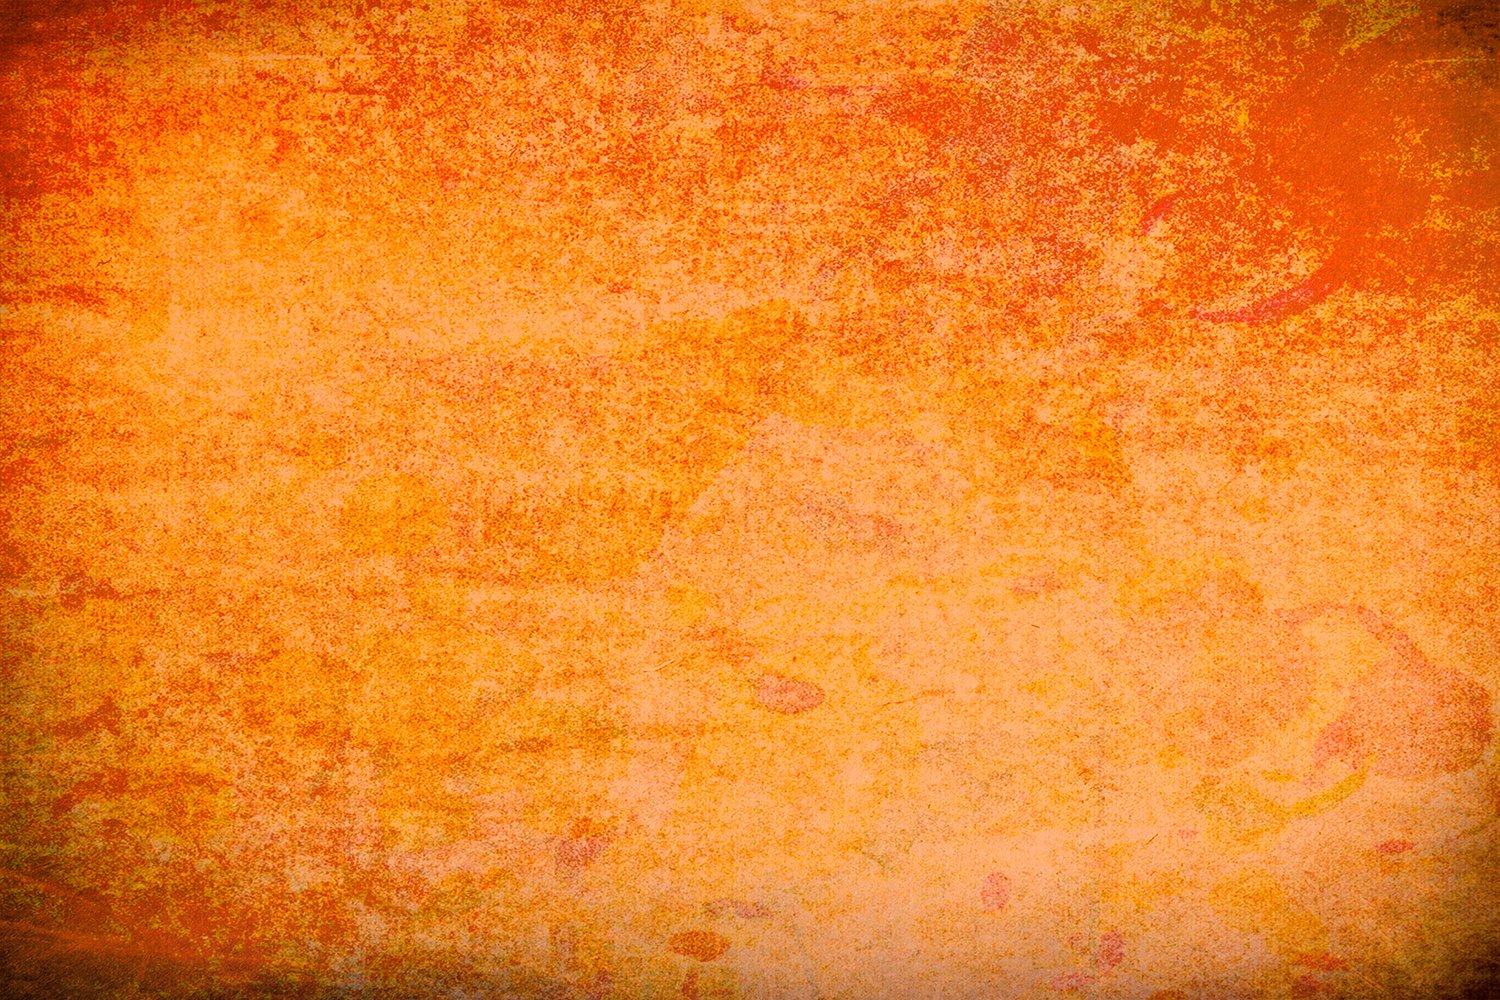 Texture of orange cardboard paper sheet. Festive background example image 1